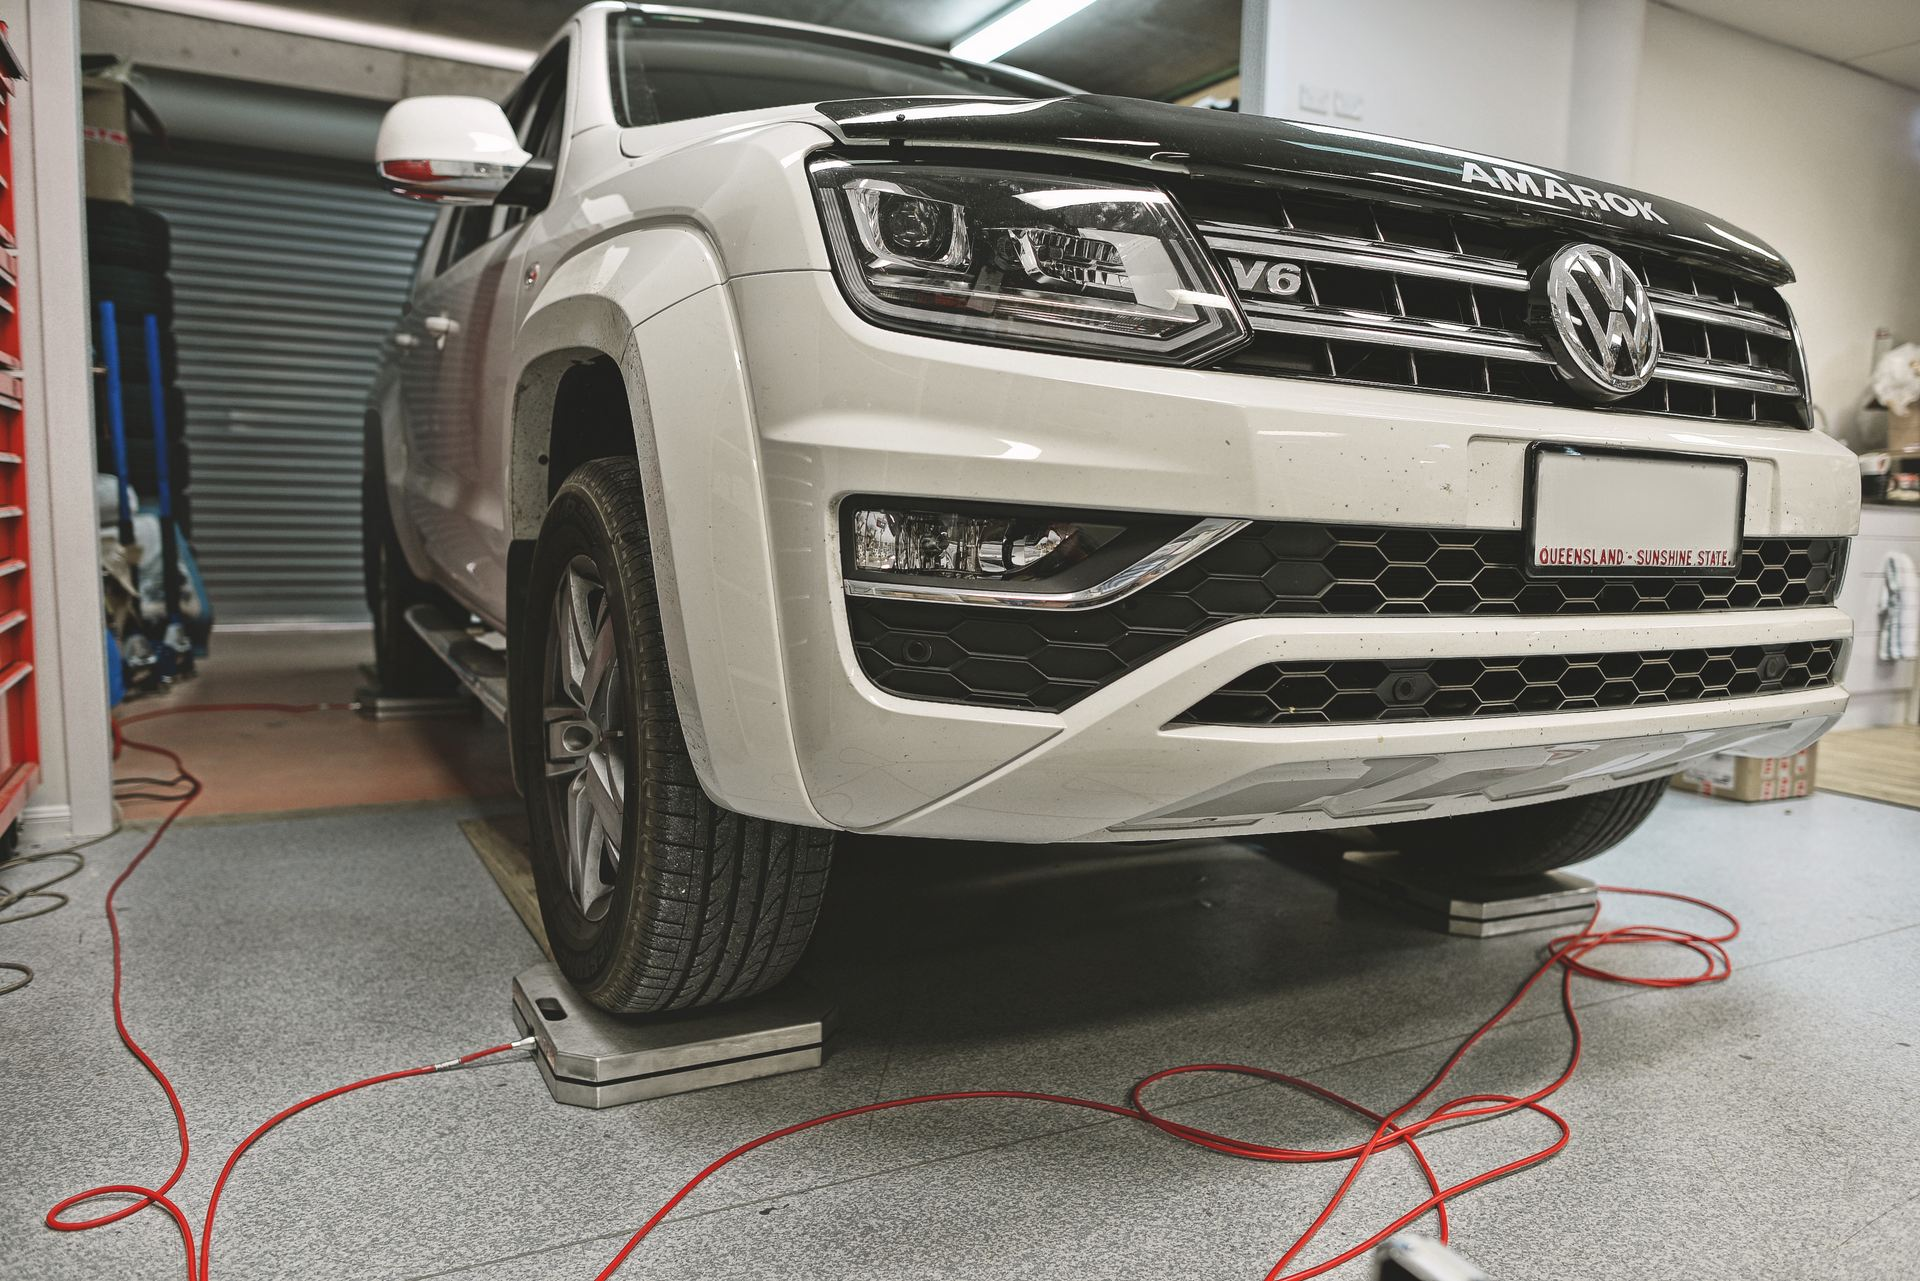 Volkswagen Amarok 3.0 TDI V6 weight check before dyno - Euro Car Upgrades - jku.com.au